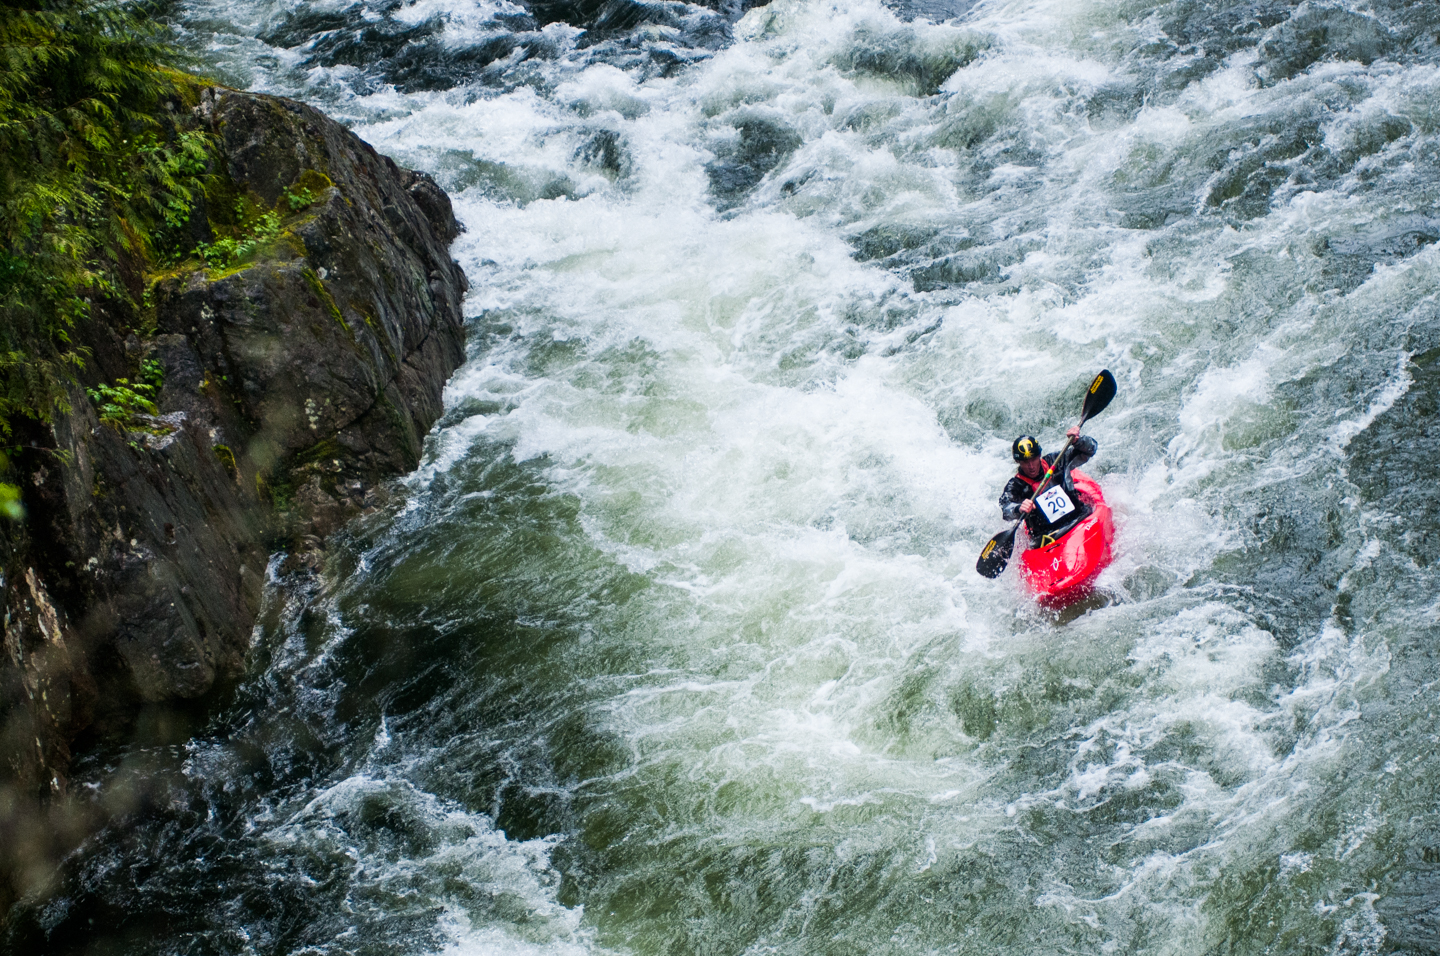 Competitor Kayaker rides the rapids in the third and final leg of the Red Bull Divide and Conquer Race in Vancouver, Canada on the 16th of June, 2012.